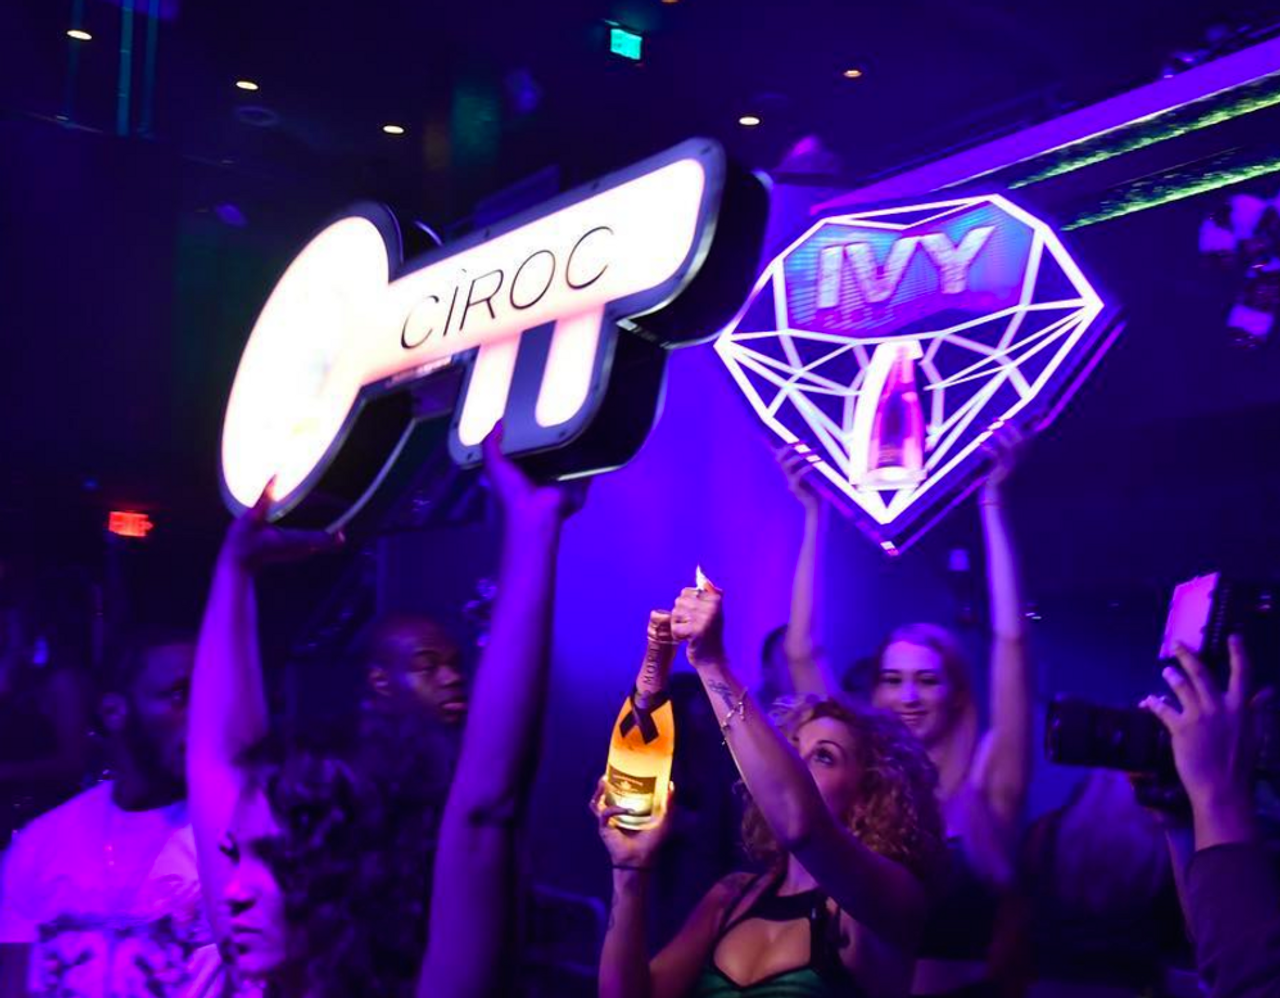 Nightclub and Bar show,NCBShow, Las Vegas,Miami,Diamond, Champagne,Bottle,service,caddie,caddy,presenter, carrier,holder,tray, LED, Light up, Bottles, VIP, Plaque,Shield,VIP tray